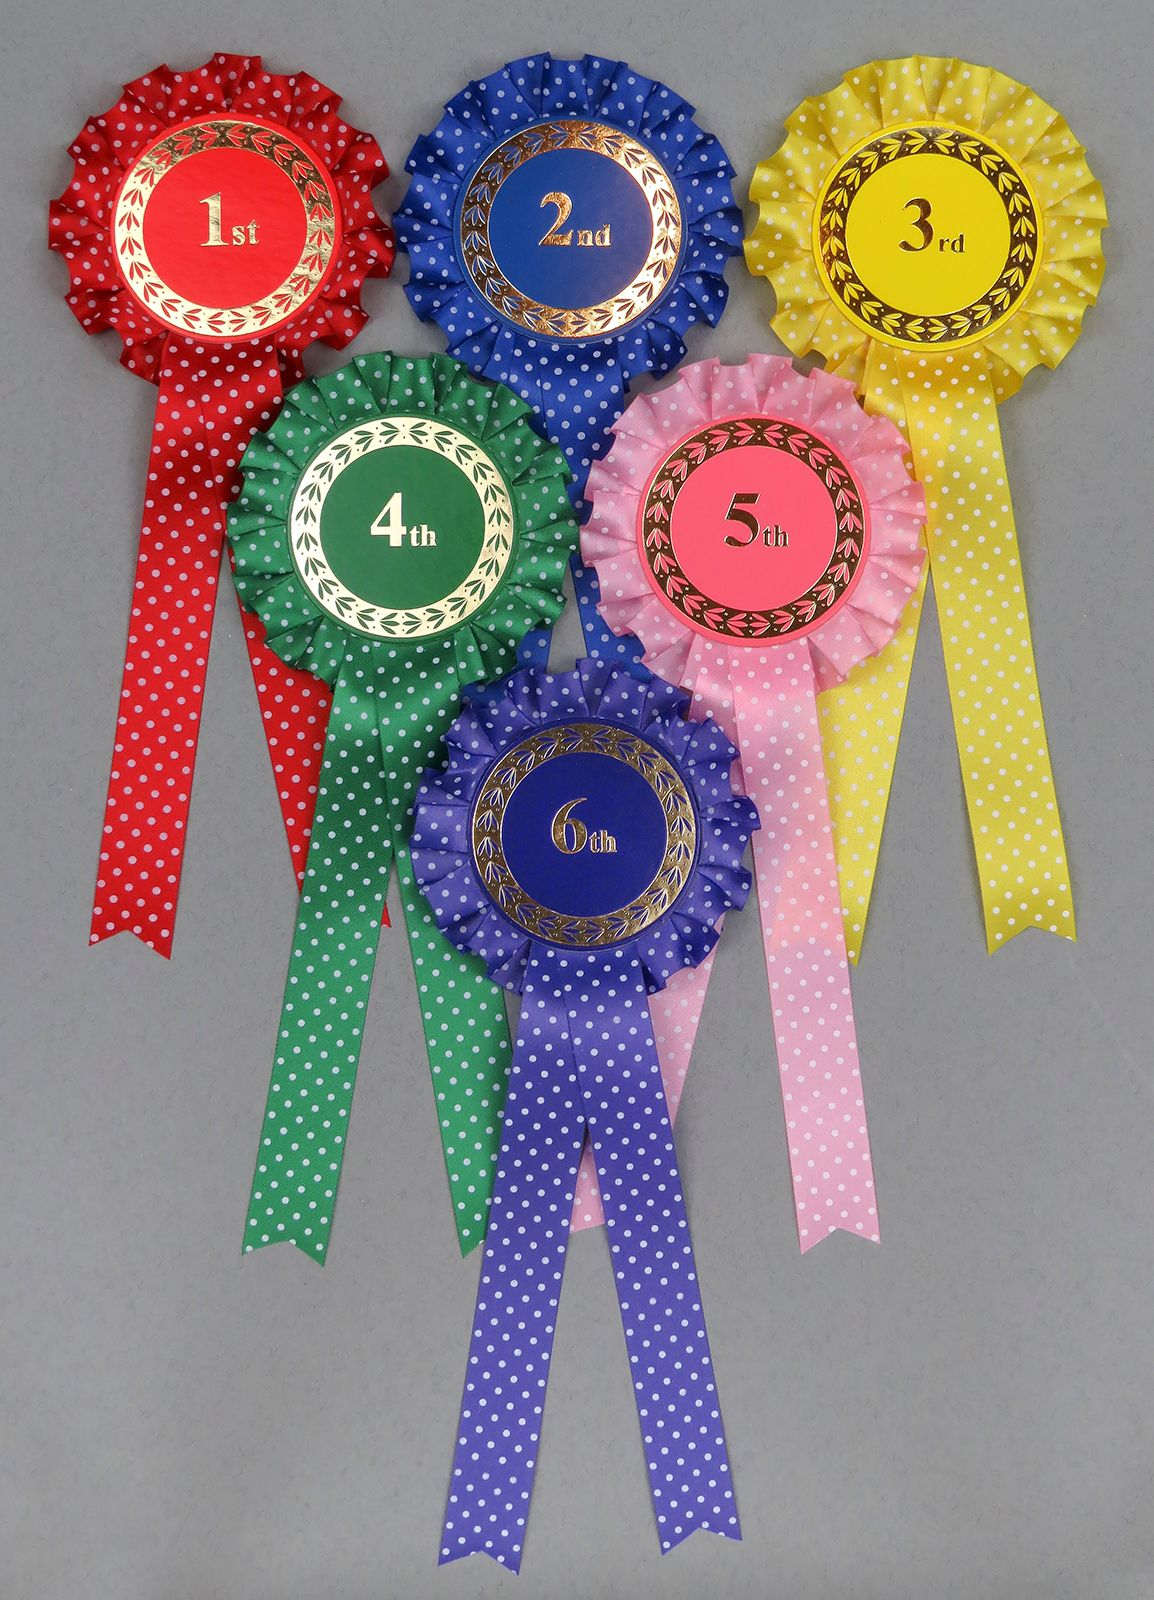 Spotty Rosettes 1st-3rd, 1st-4th or 1st-6th